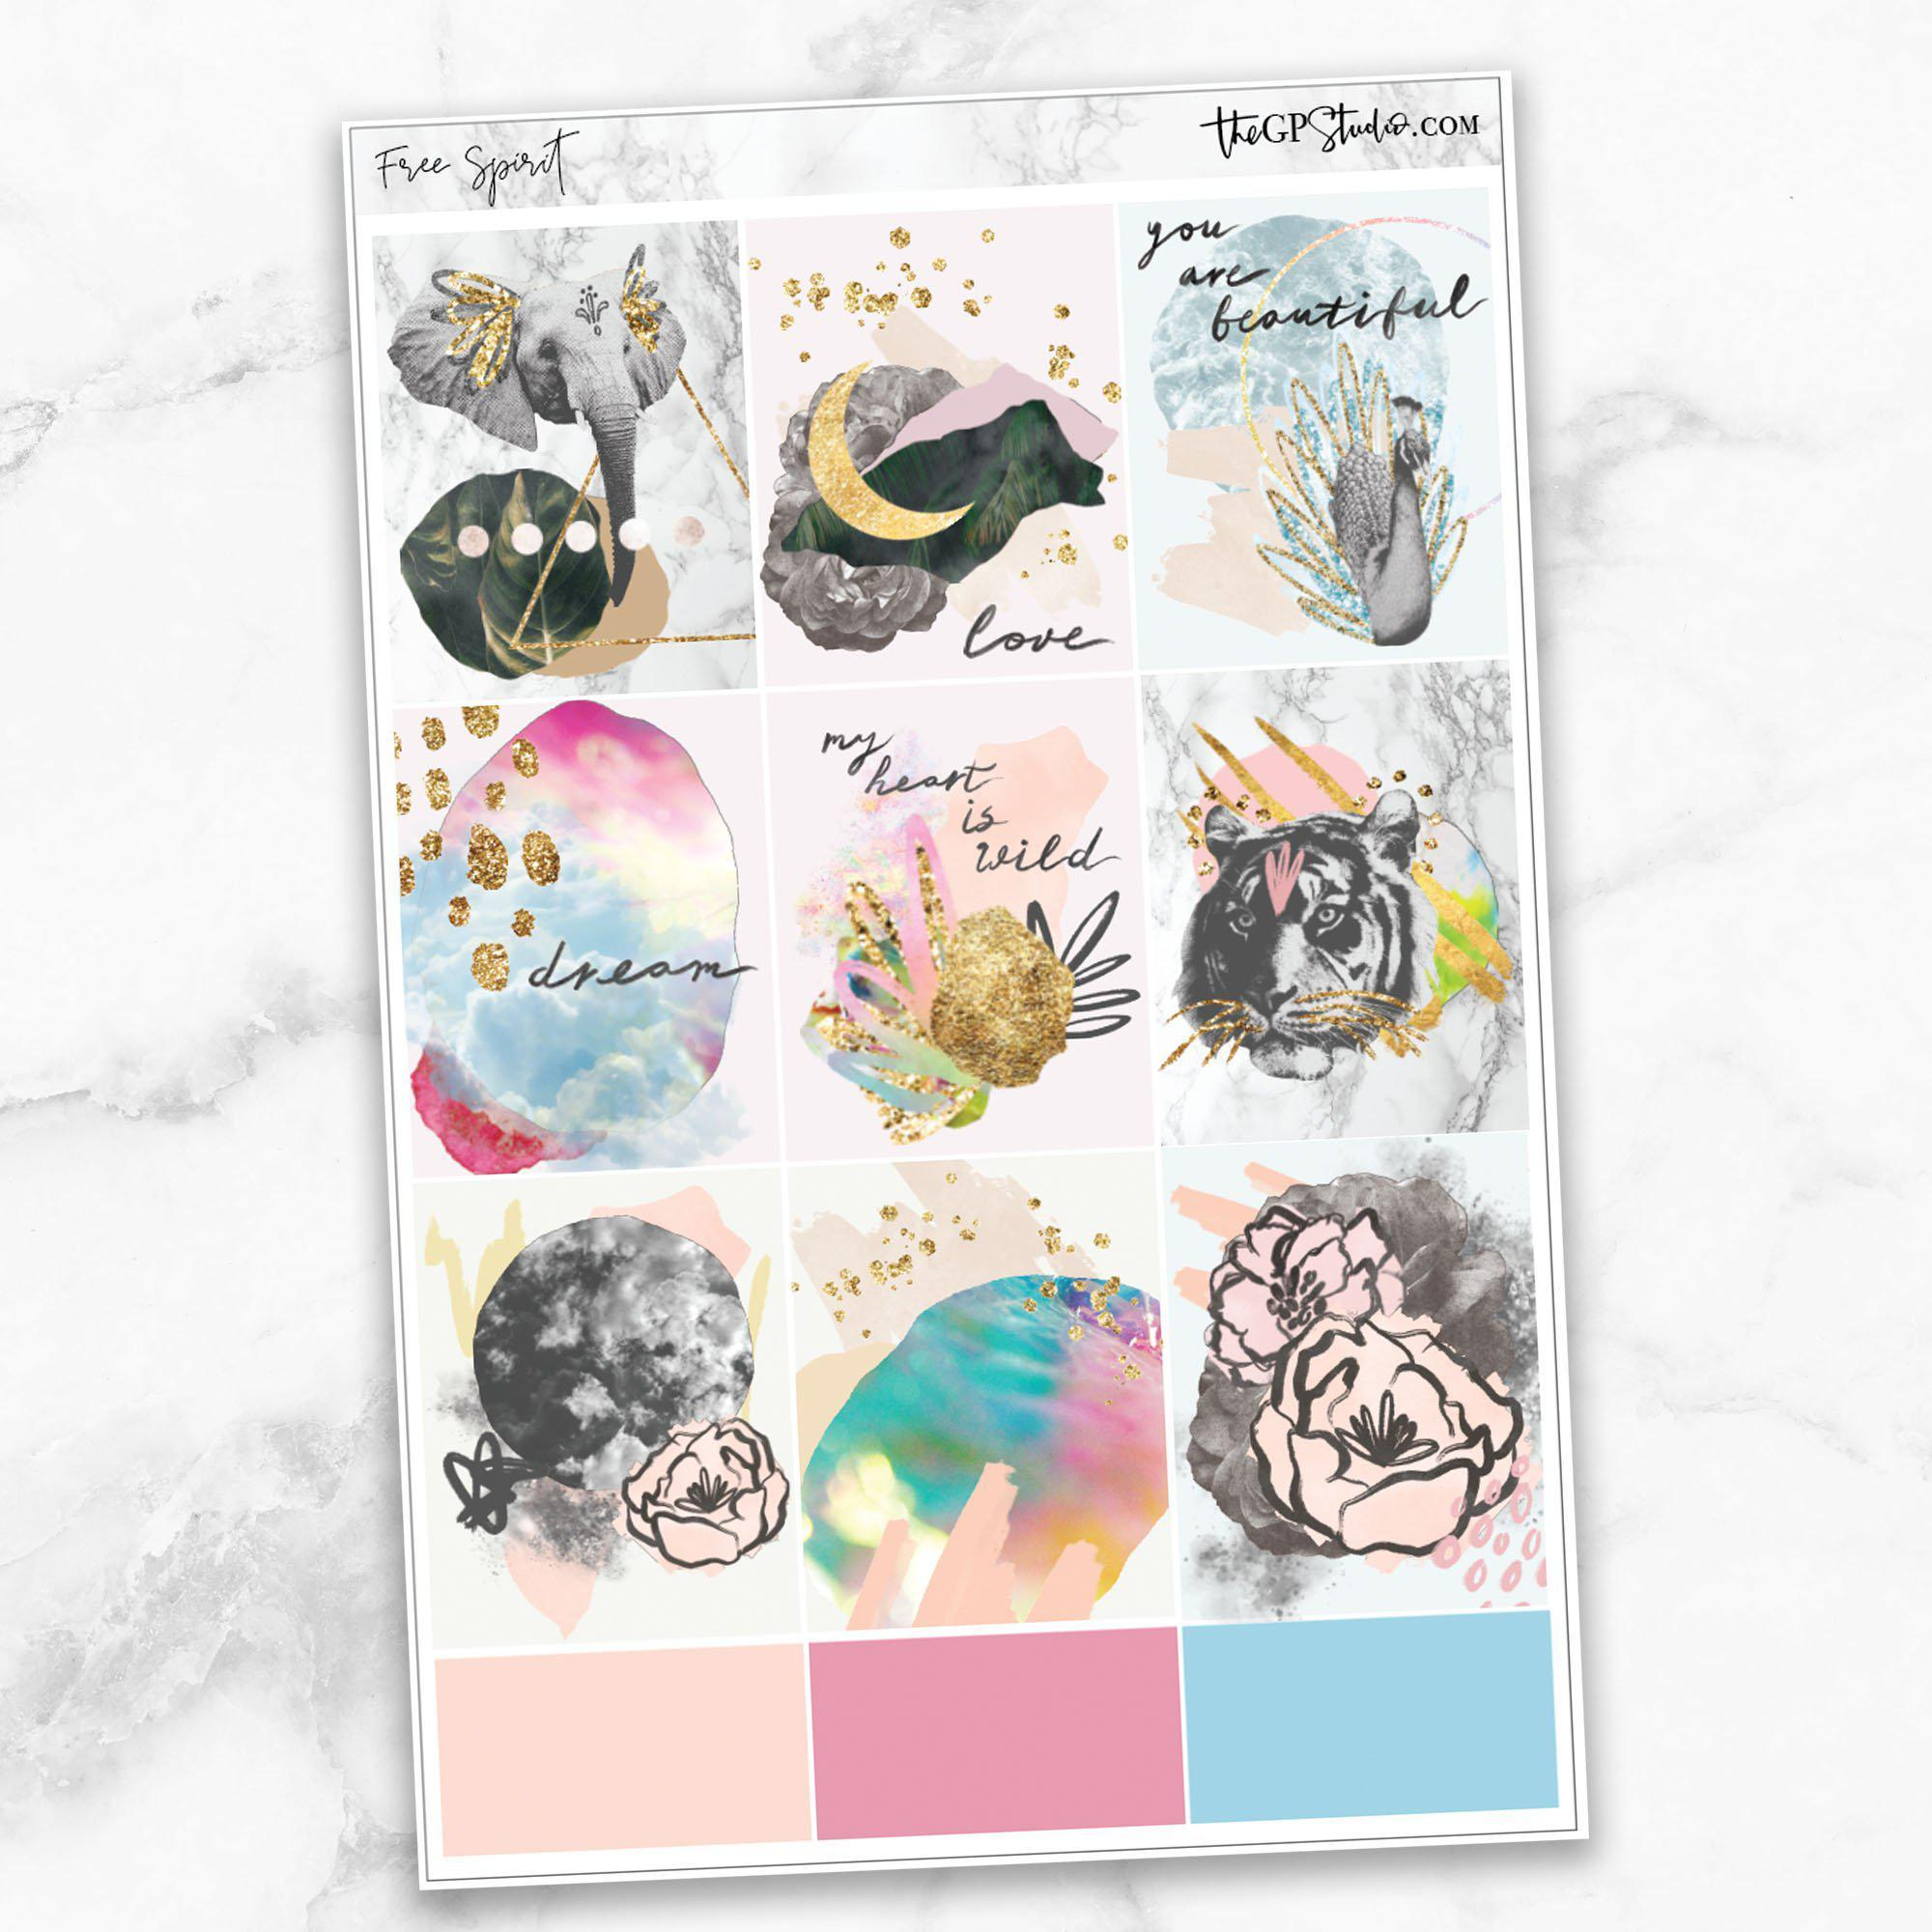 FREE SPIRIT Full Boxes Planner Stickers-The GP Studio